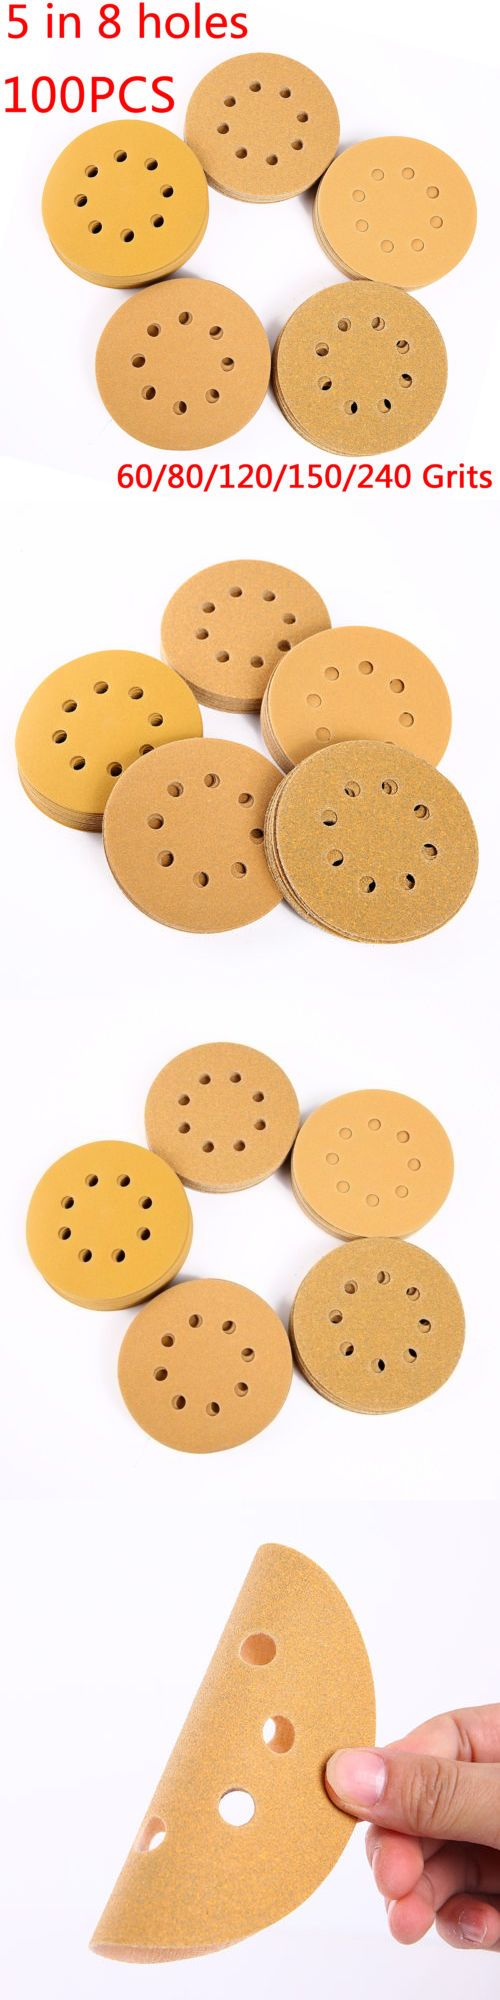 Sander Parts And Accessories 20796 100 Hook And Loop 5 Inch Sanding Disc Discs Drywall Sander Paper Sandpaper Pa Paper Sandpaper Drywall Sander